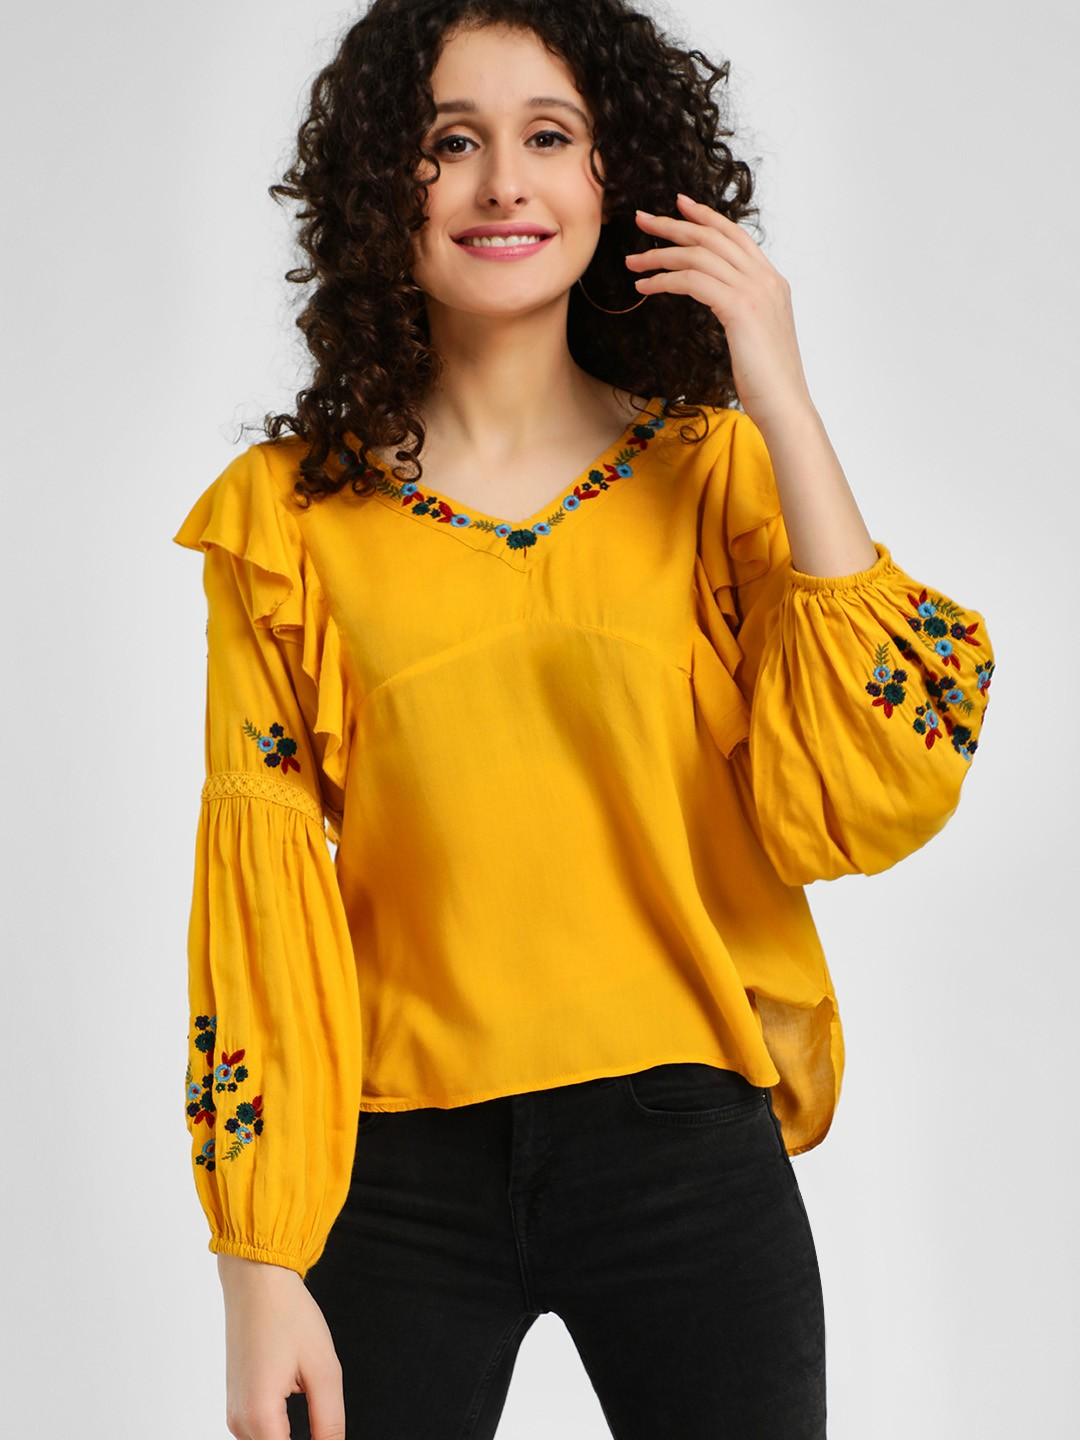 Rena Love Yellow Floral Embroidered Ruffled Blouse 1